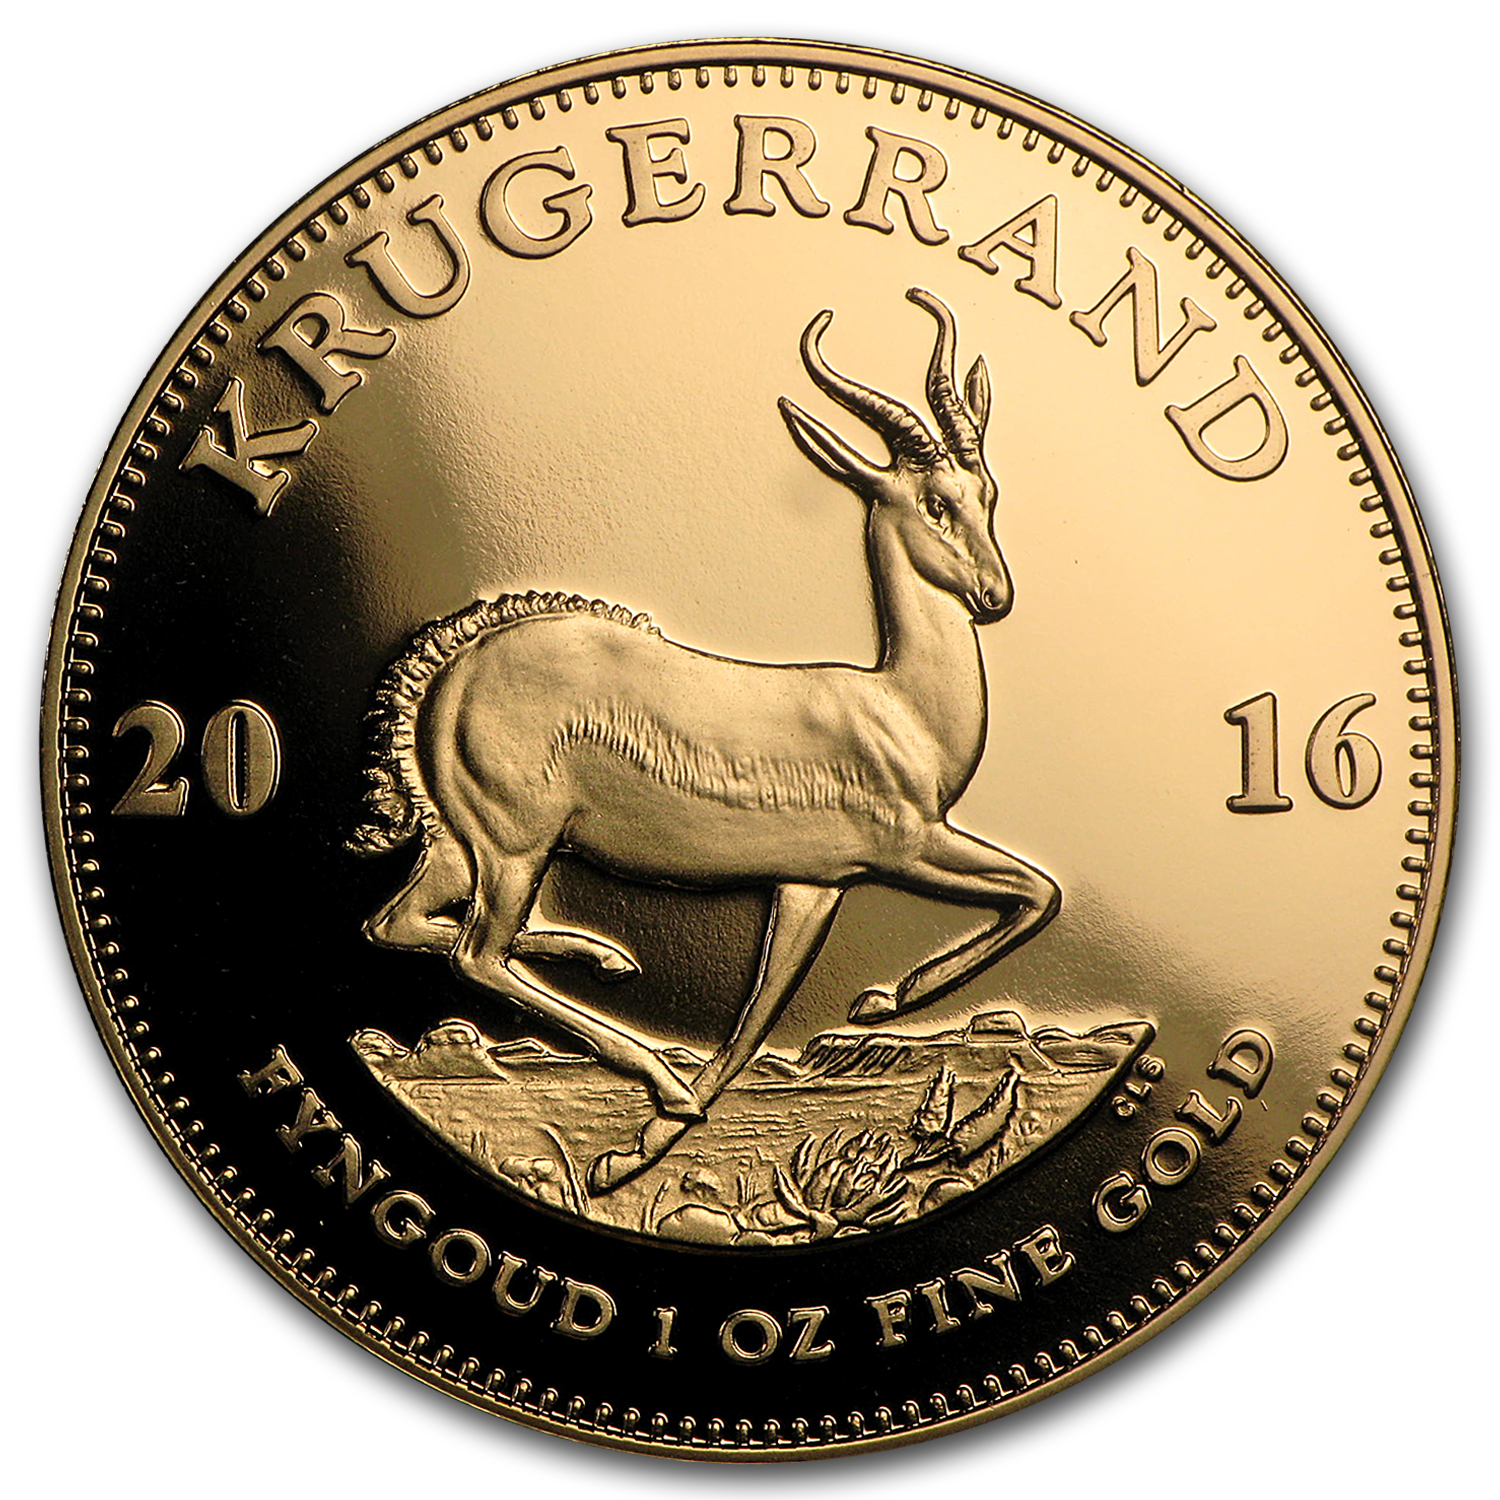 2016 South Africa 1 oz Gold Krugerrand Proof